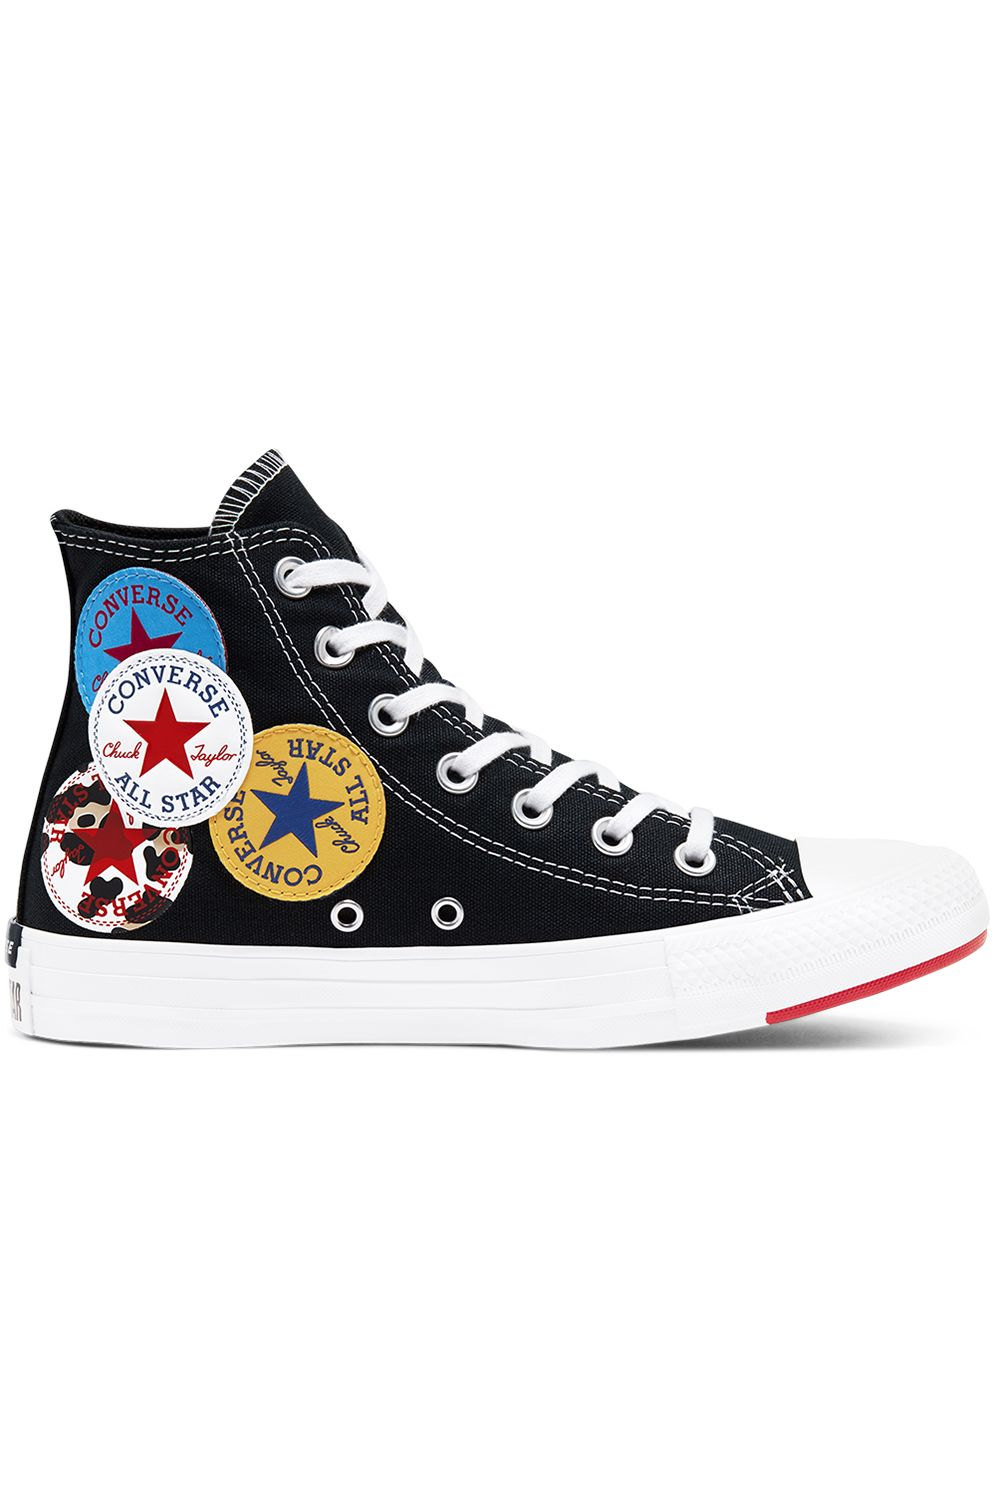 Tenis Converse CHUCK TAYLOR ALL STAR HI Black/University Red/Amarillo